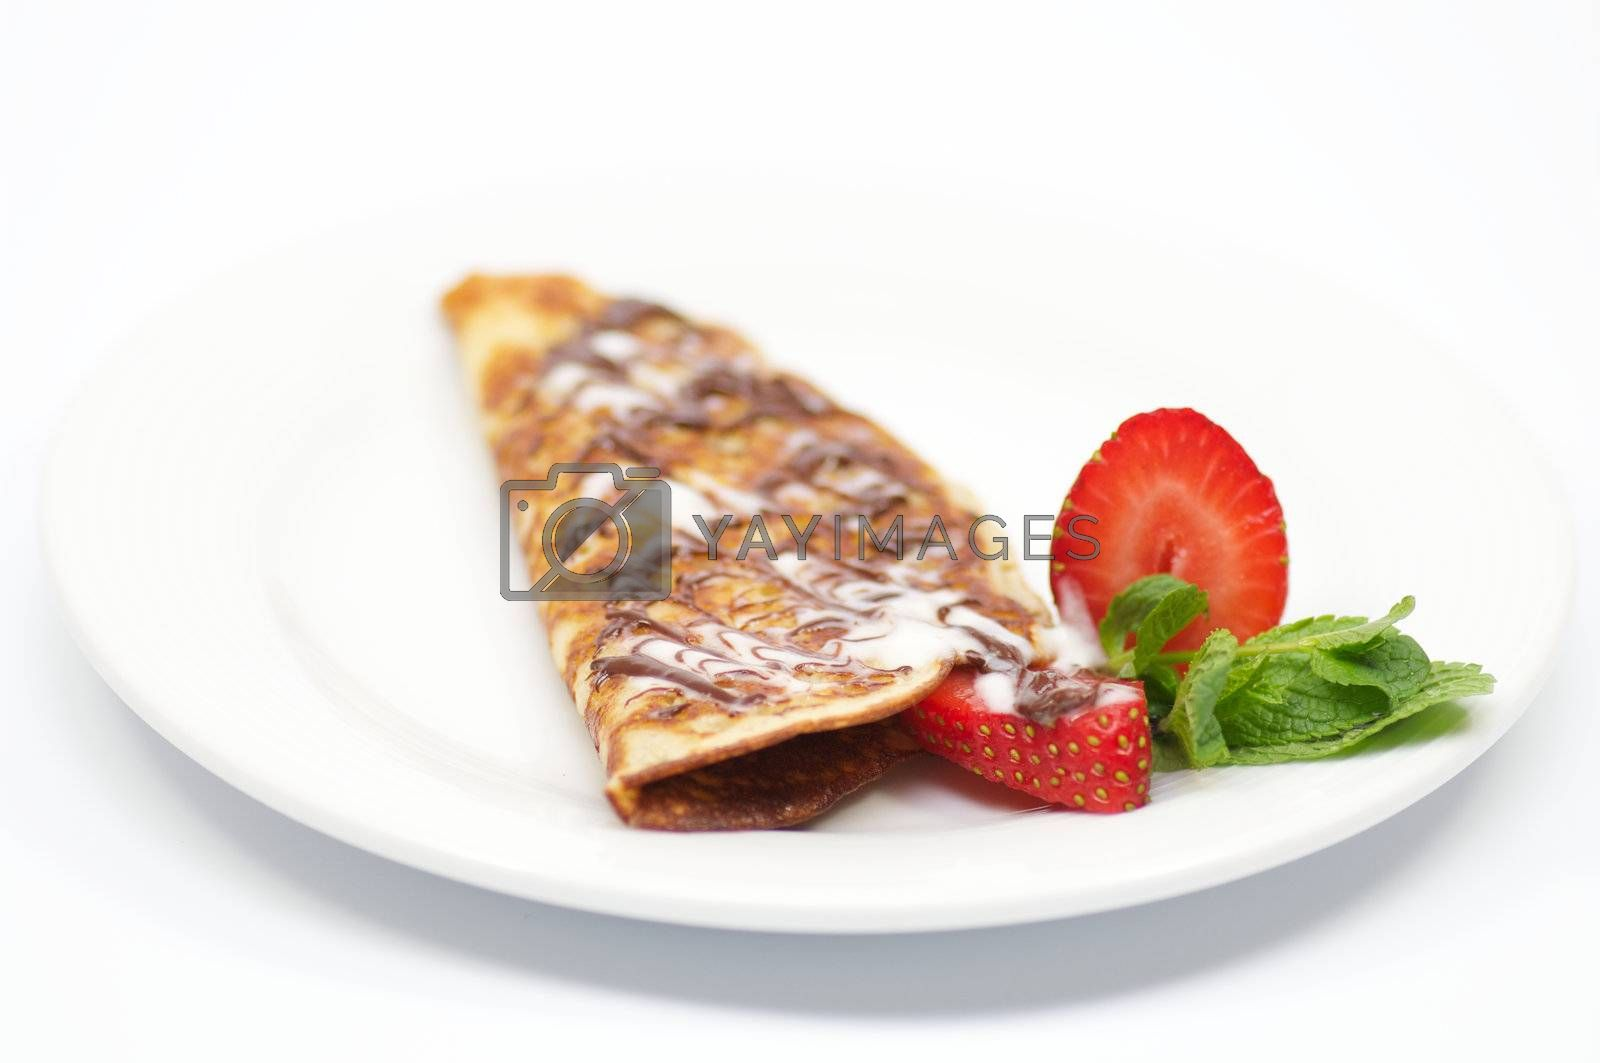 Pancakes with strawberry and glaze